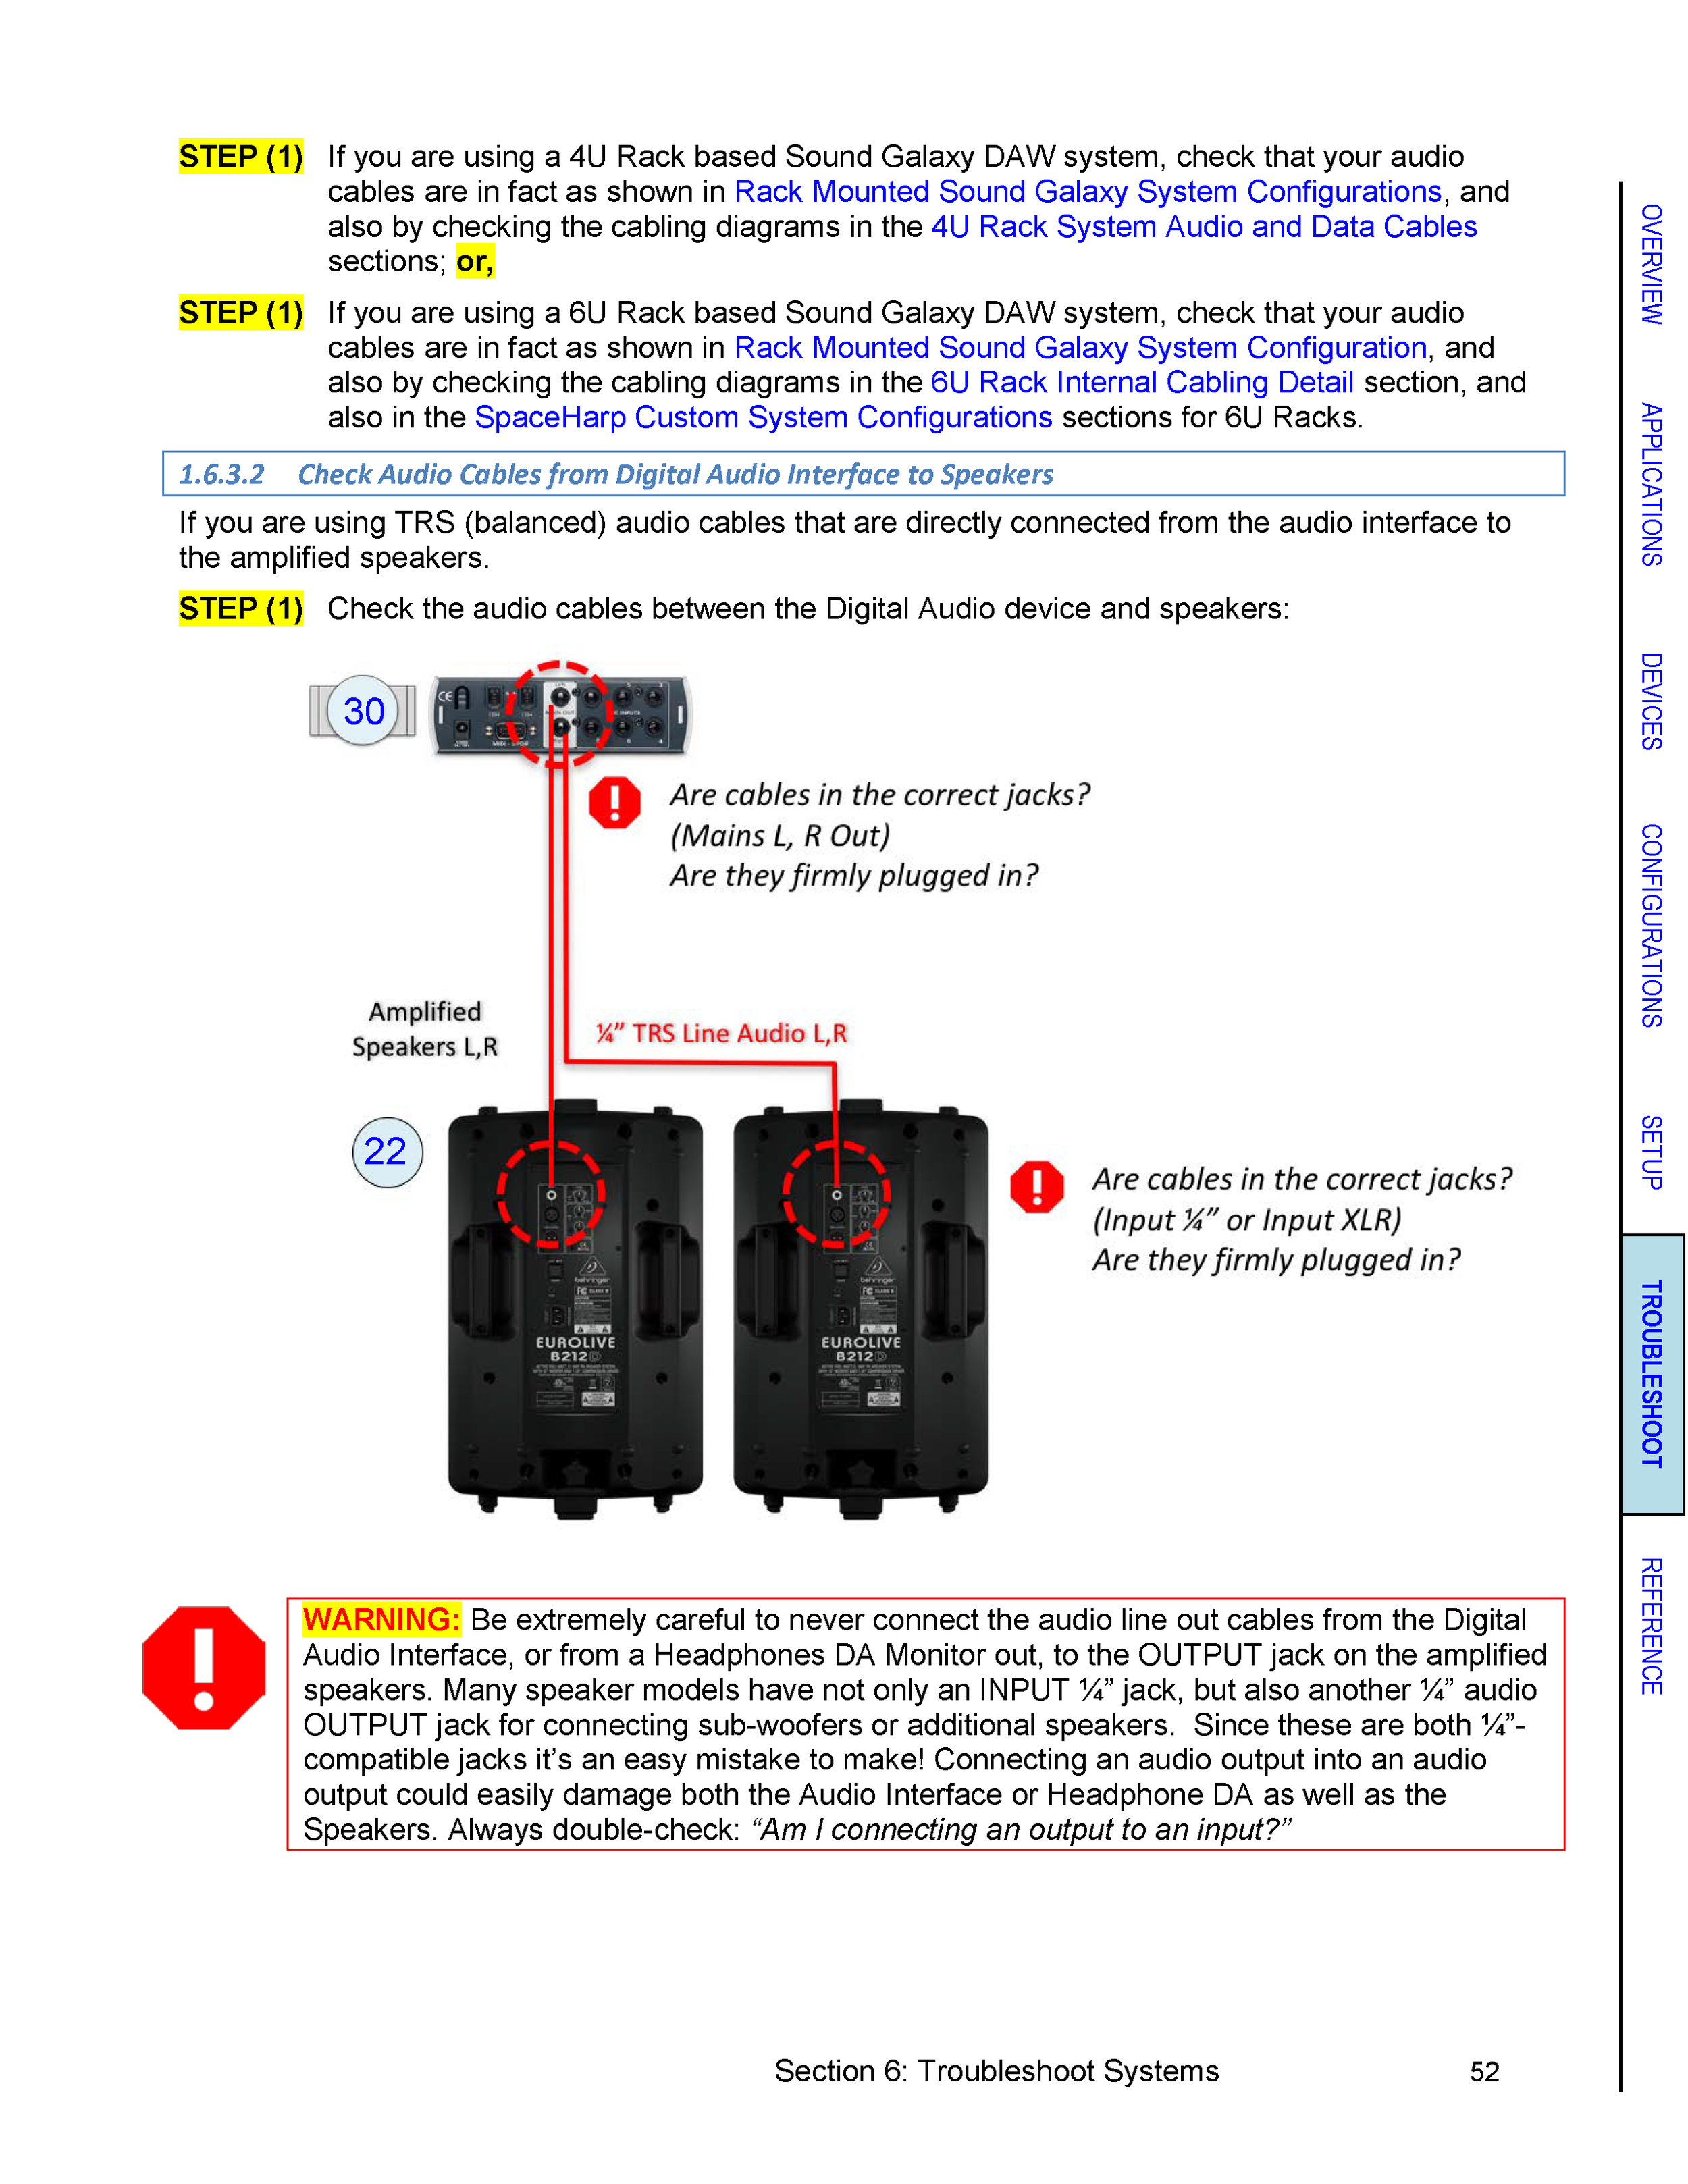 SpaceHarp_Systems_User_Guide_Oct-9th-2017_released_Page_52.png